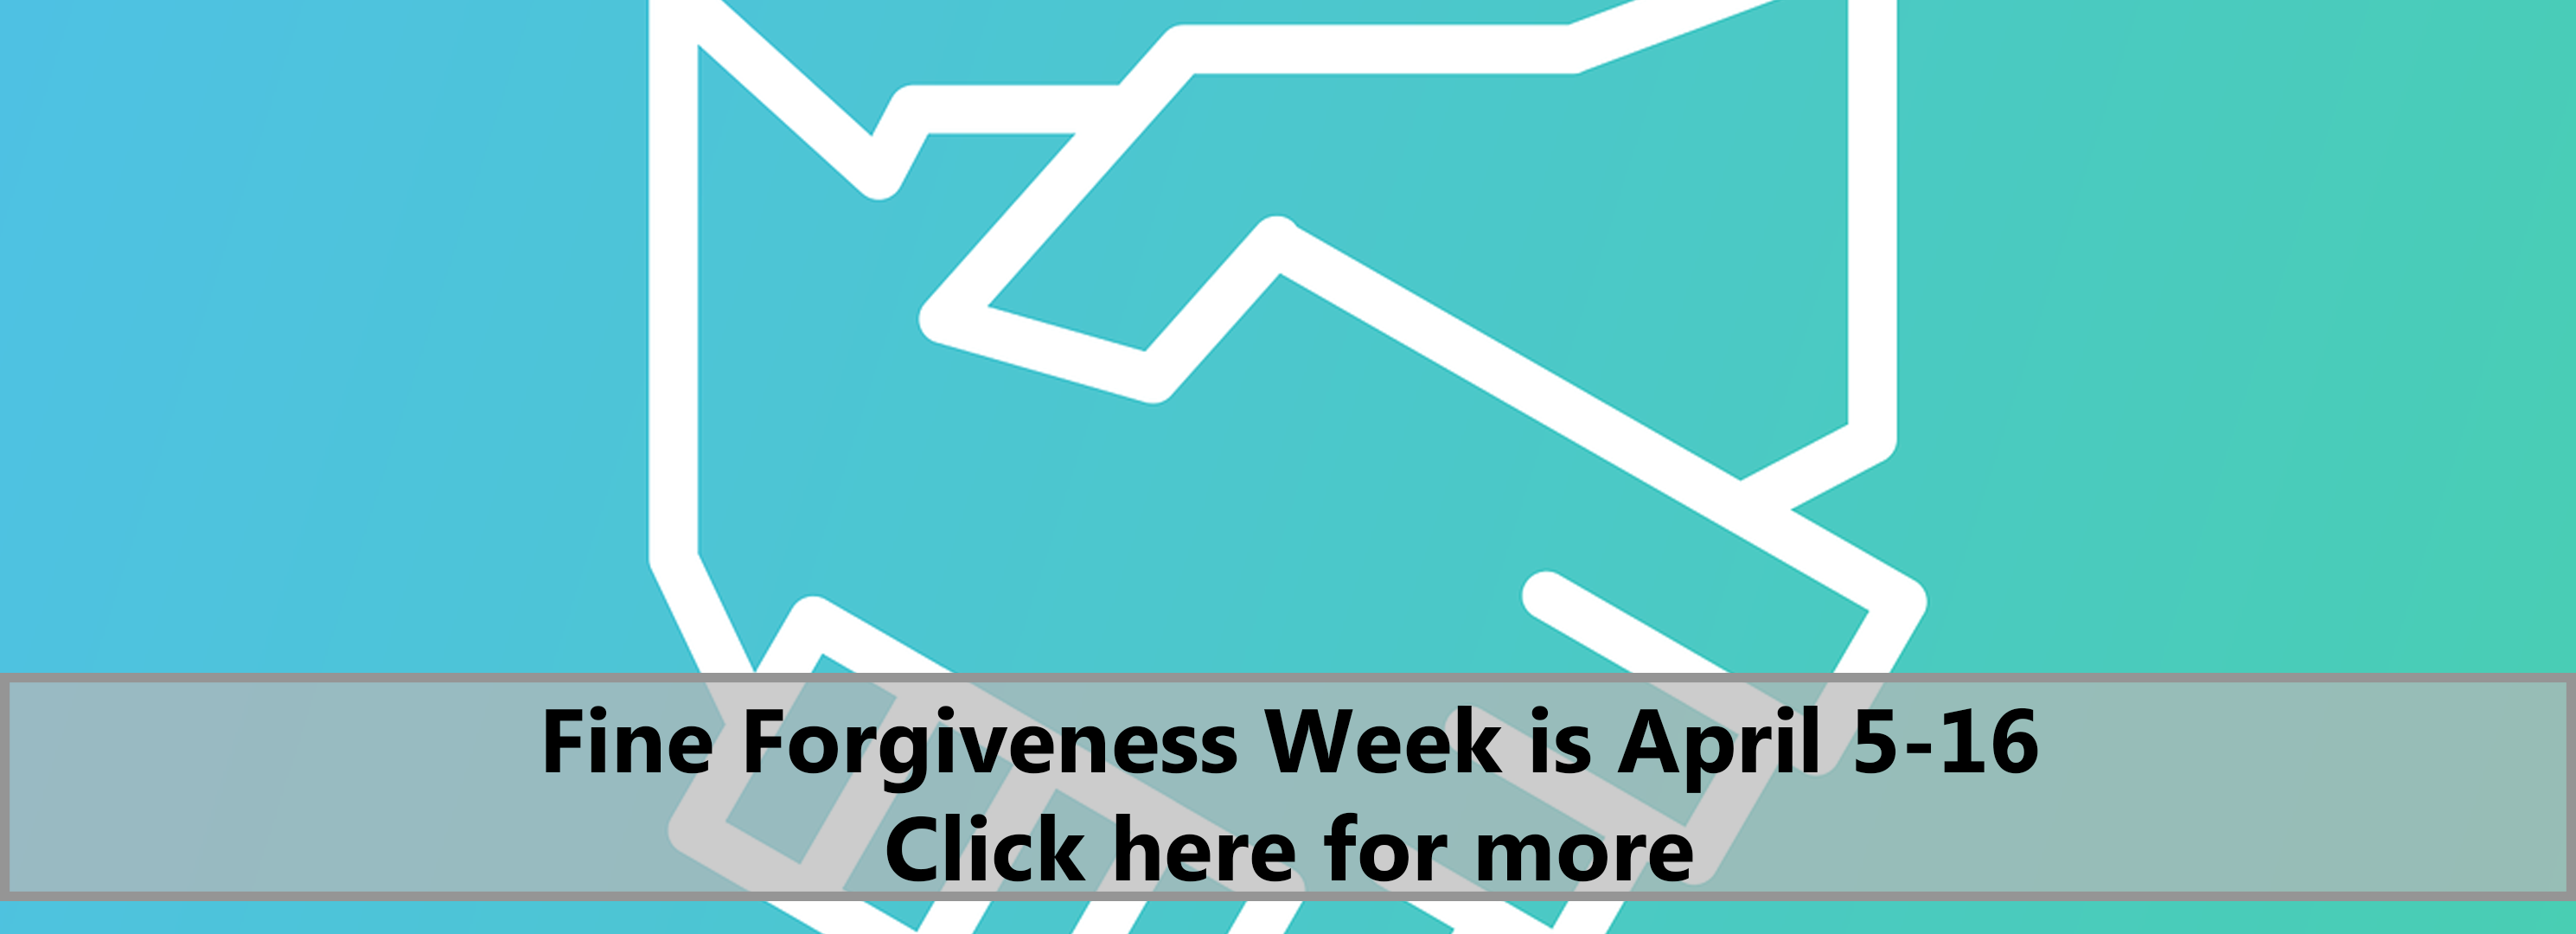 Fine Forgiveness Week is April 5-16. Click here for more.